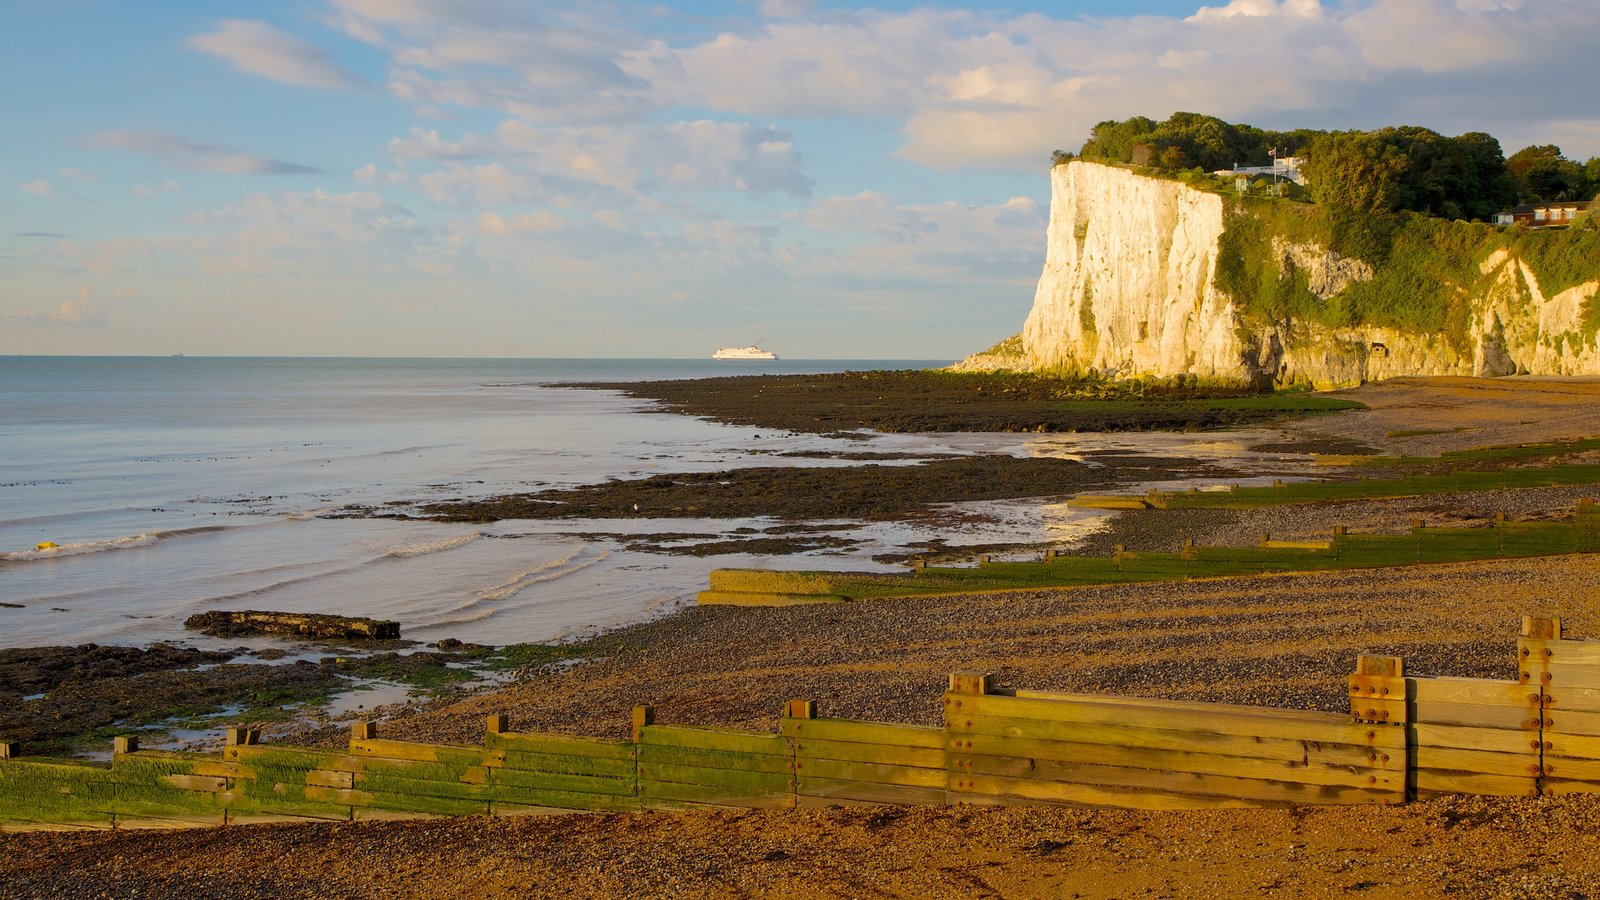 White Cliffs of Dover featuring landscape views and a pebble beach